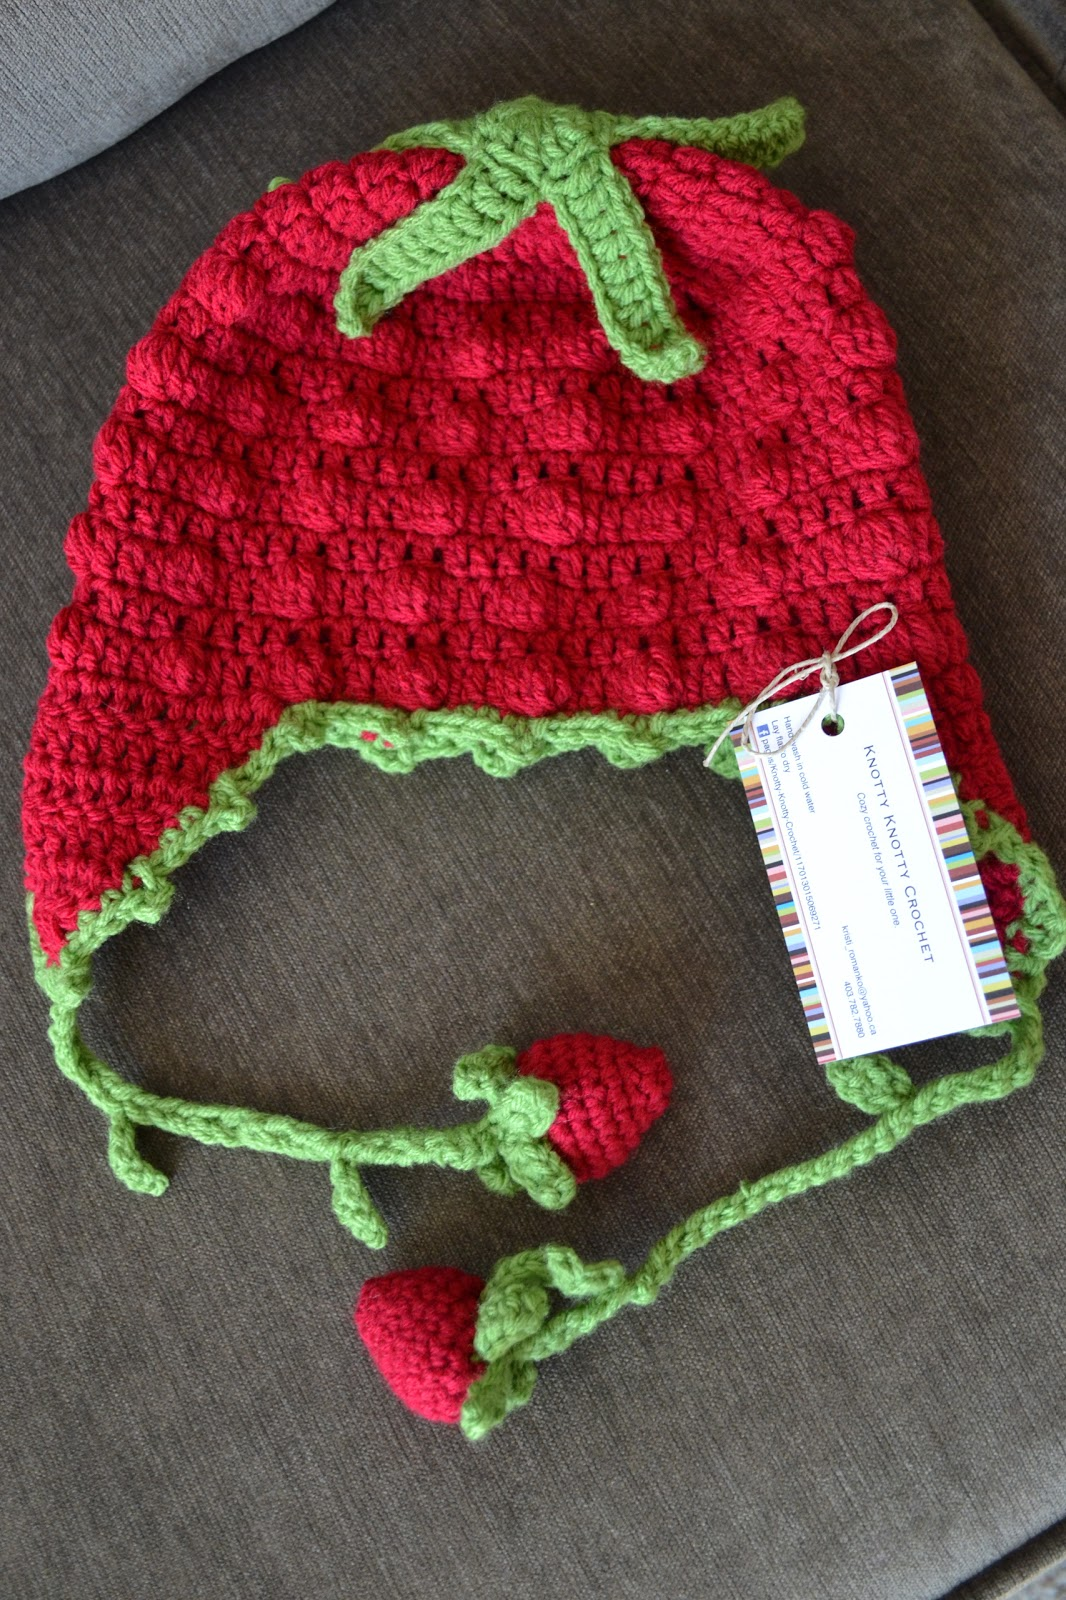 Knotty Knotty Crochet: sweet strawberry hat FREE PATTERN!